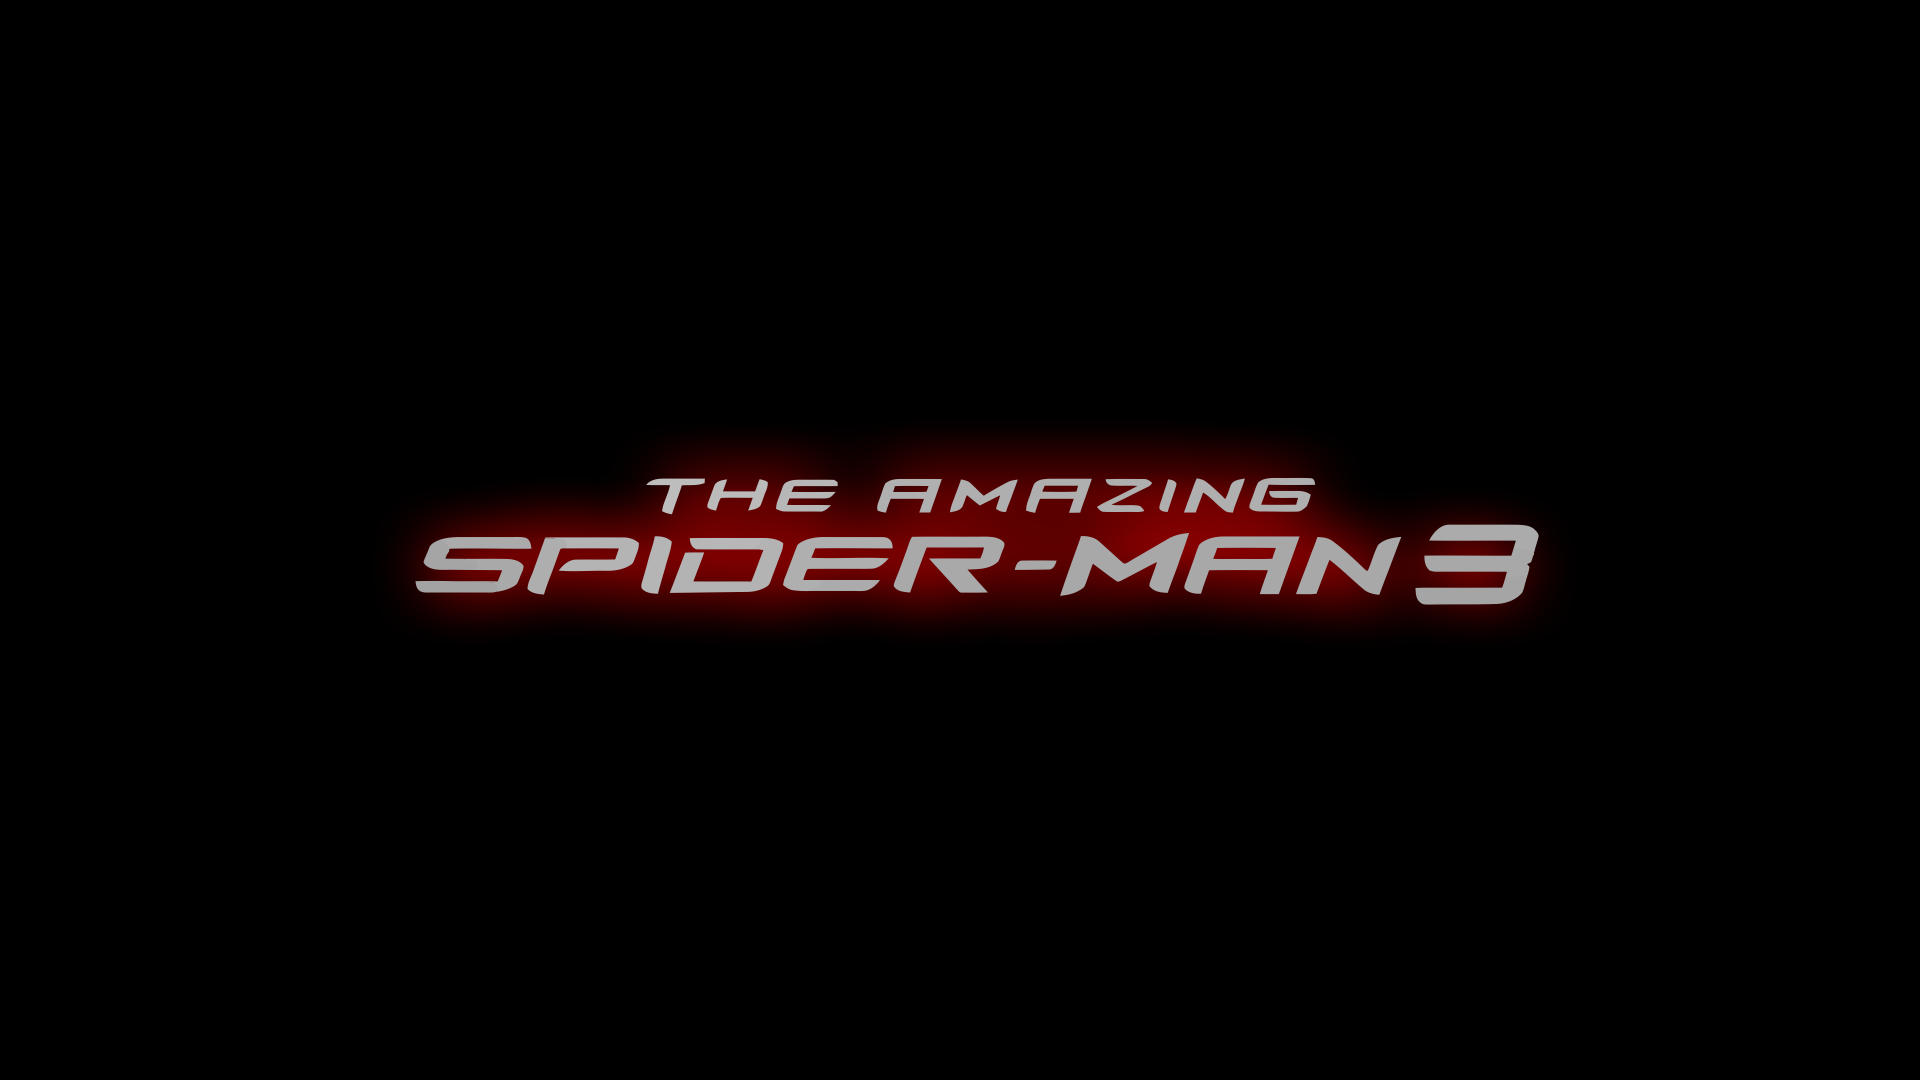 The amazing spider man logo - photo#40